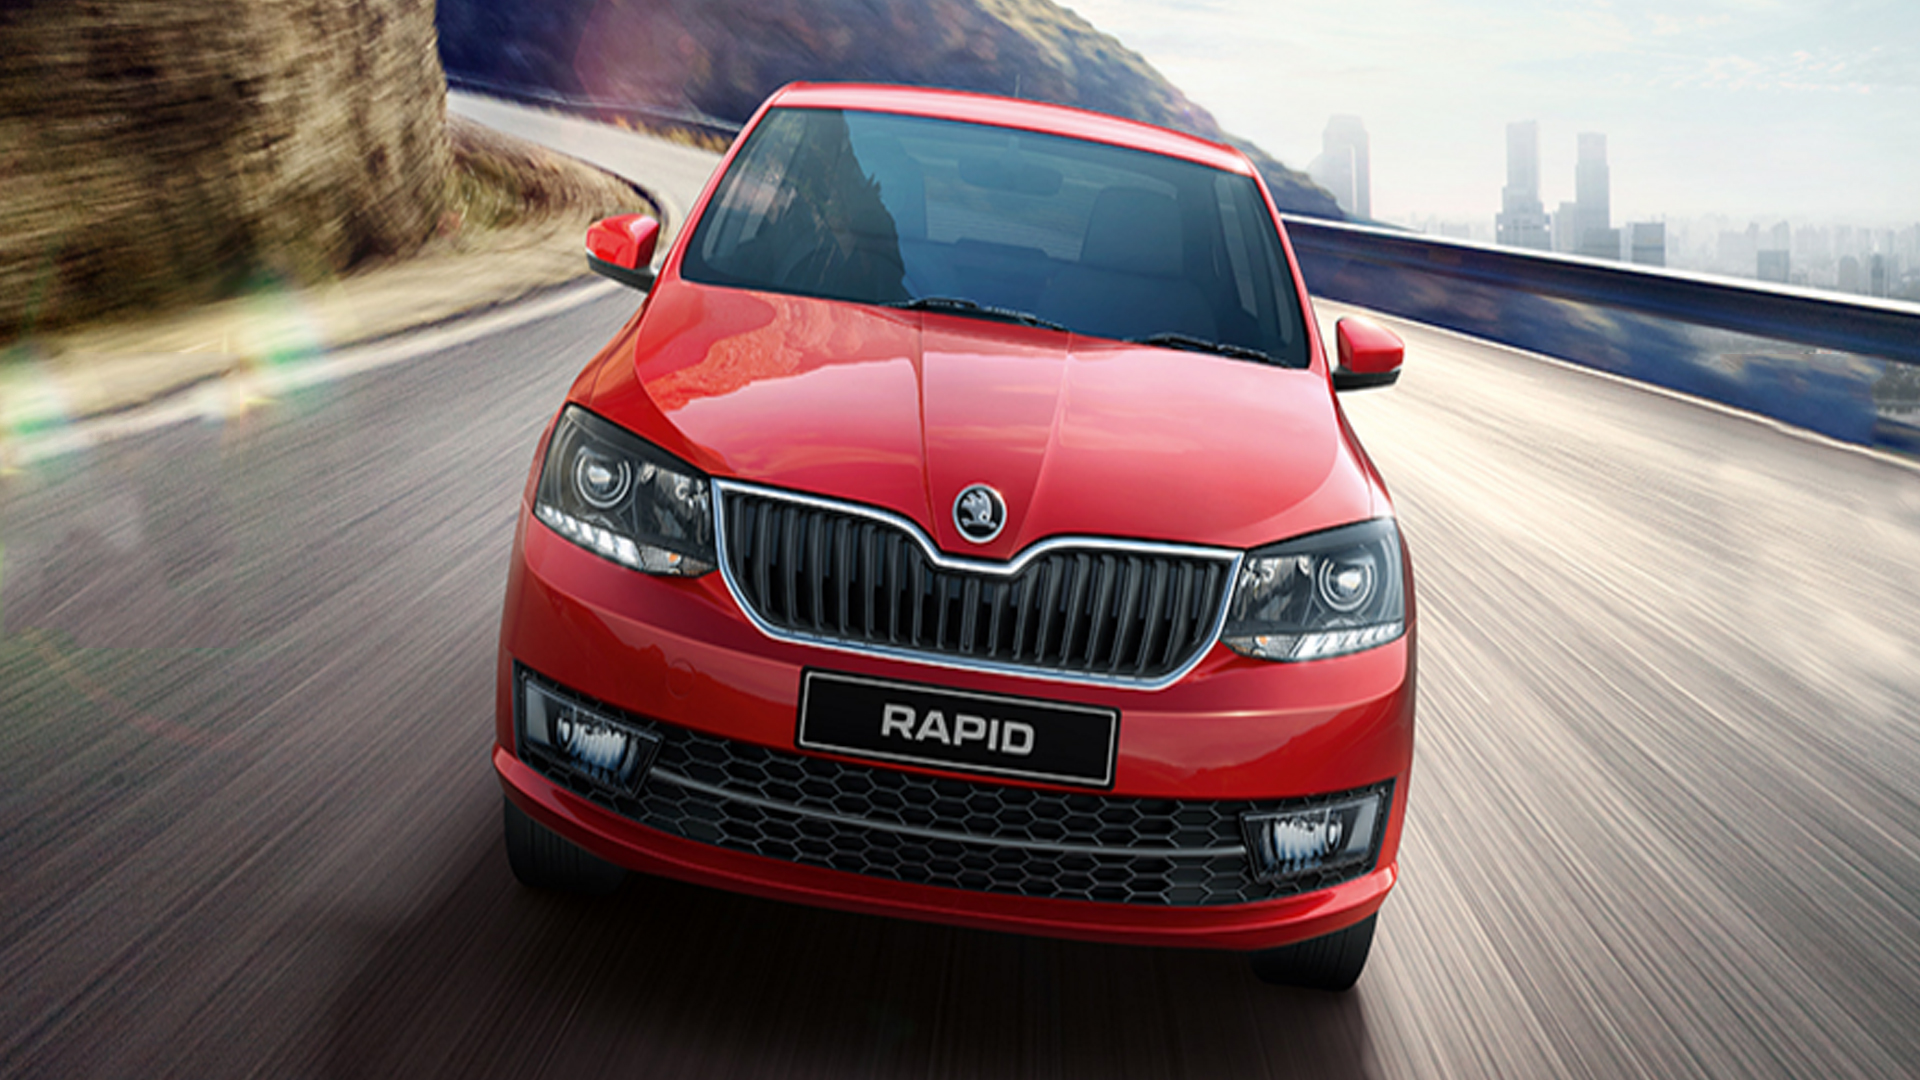 Skoda Rapid 2016 Price Mileage Reviews Specification Gallery